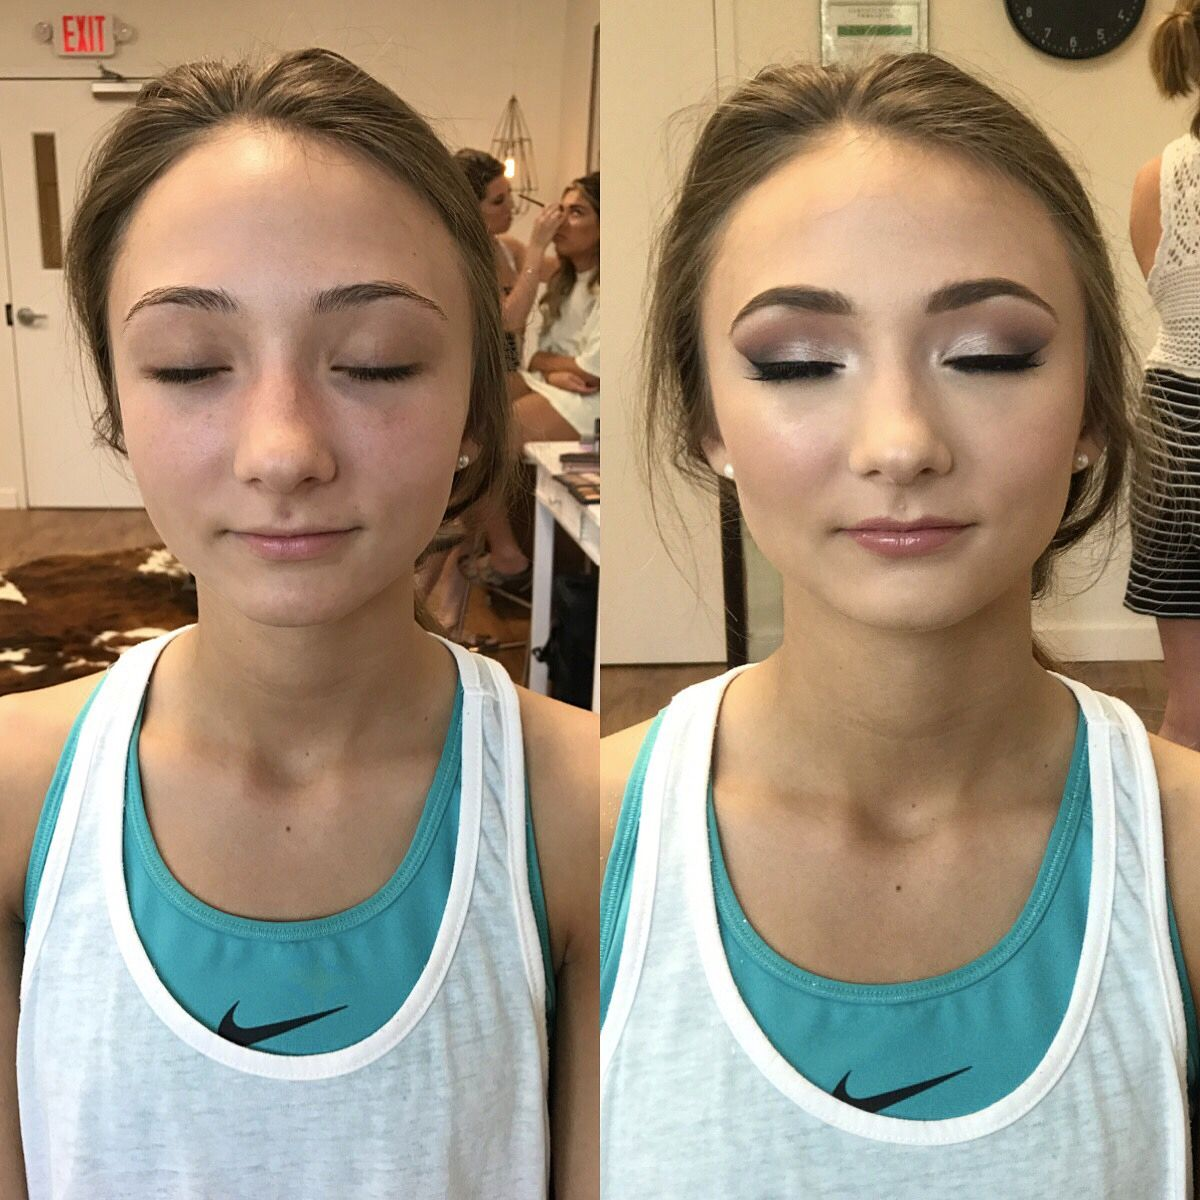 Makeup Airbrush kit before and after forecast dress for autumn in 2019